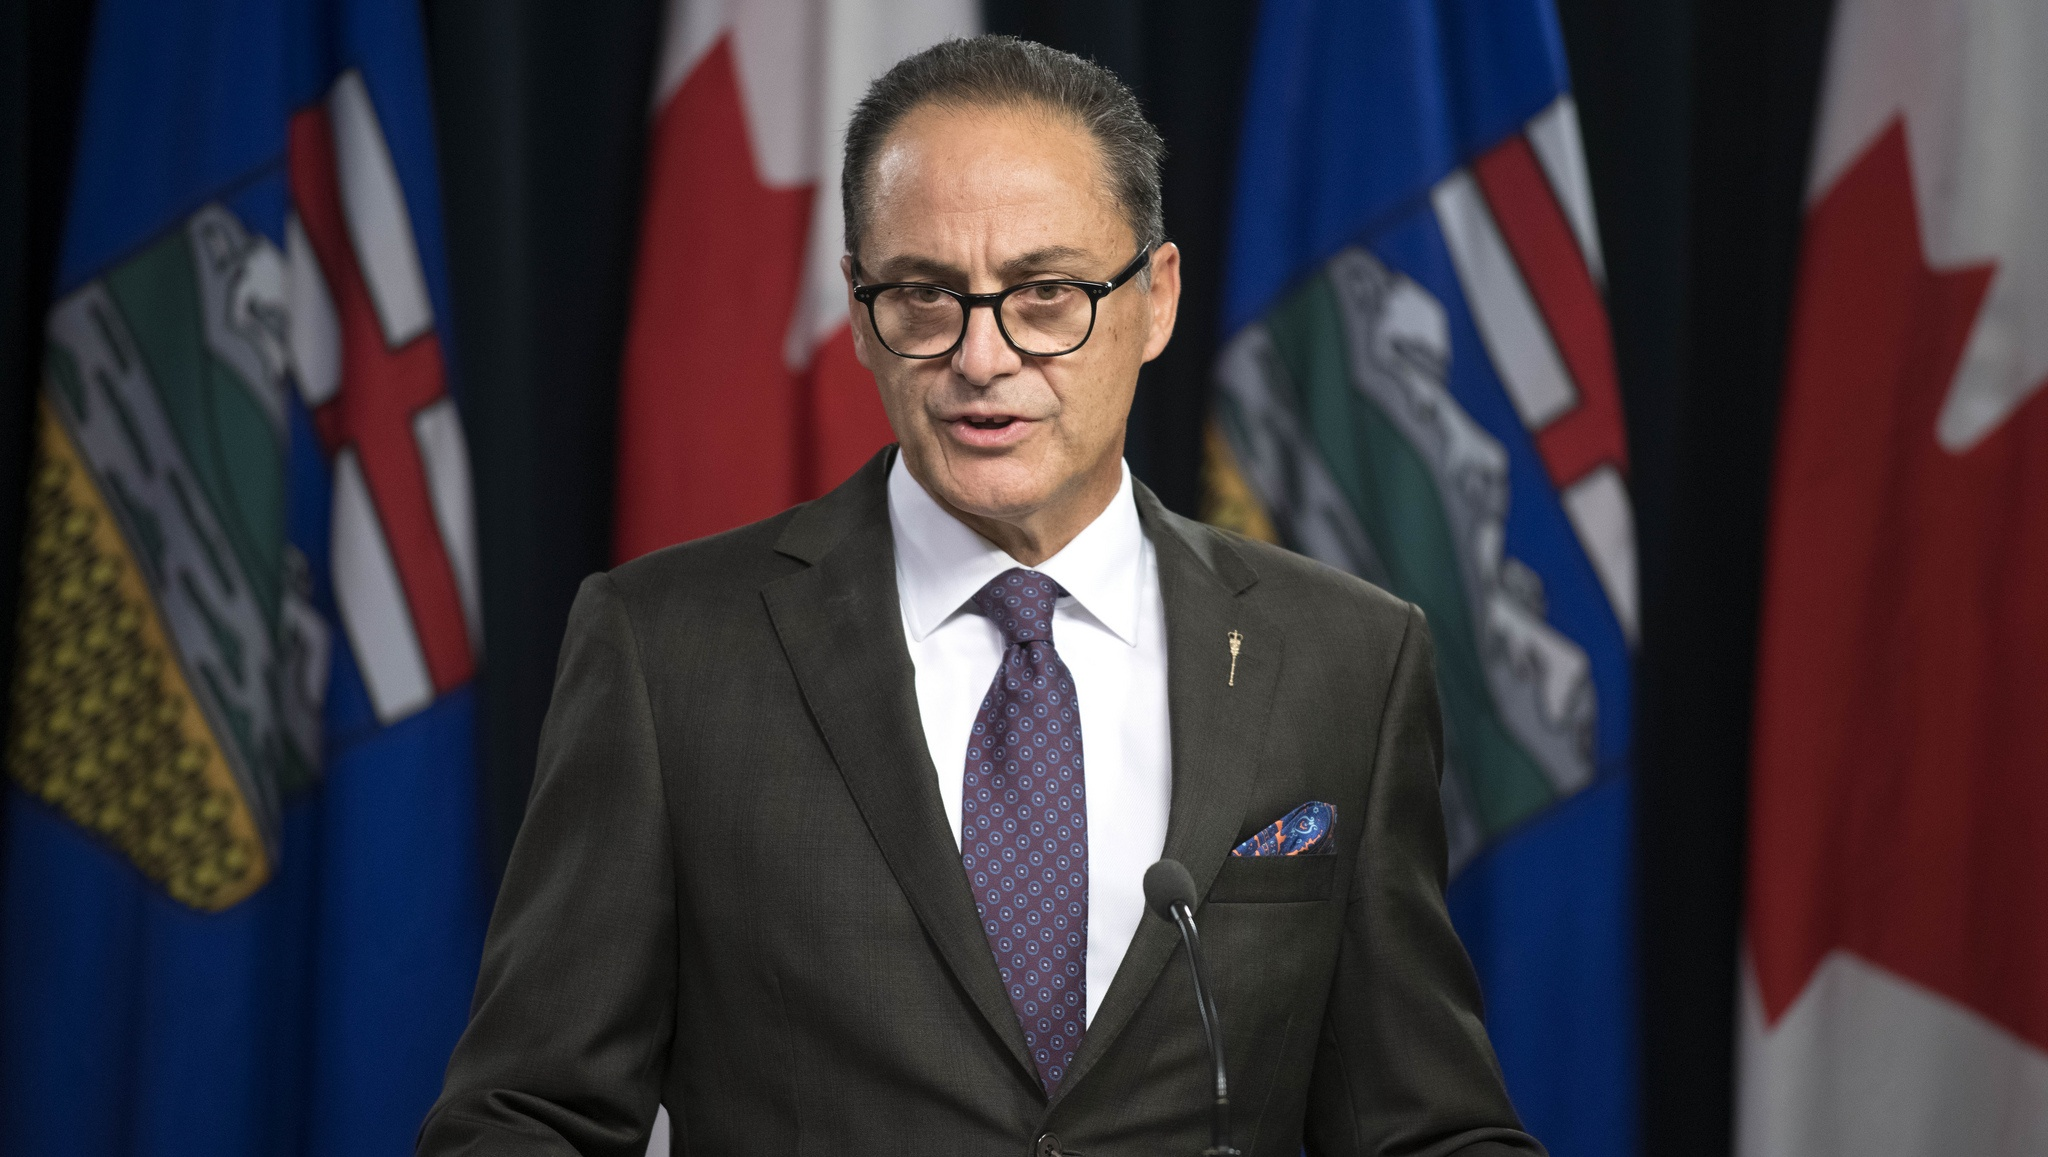 Alberta's economy projecting $1 billion to be erased from deficit